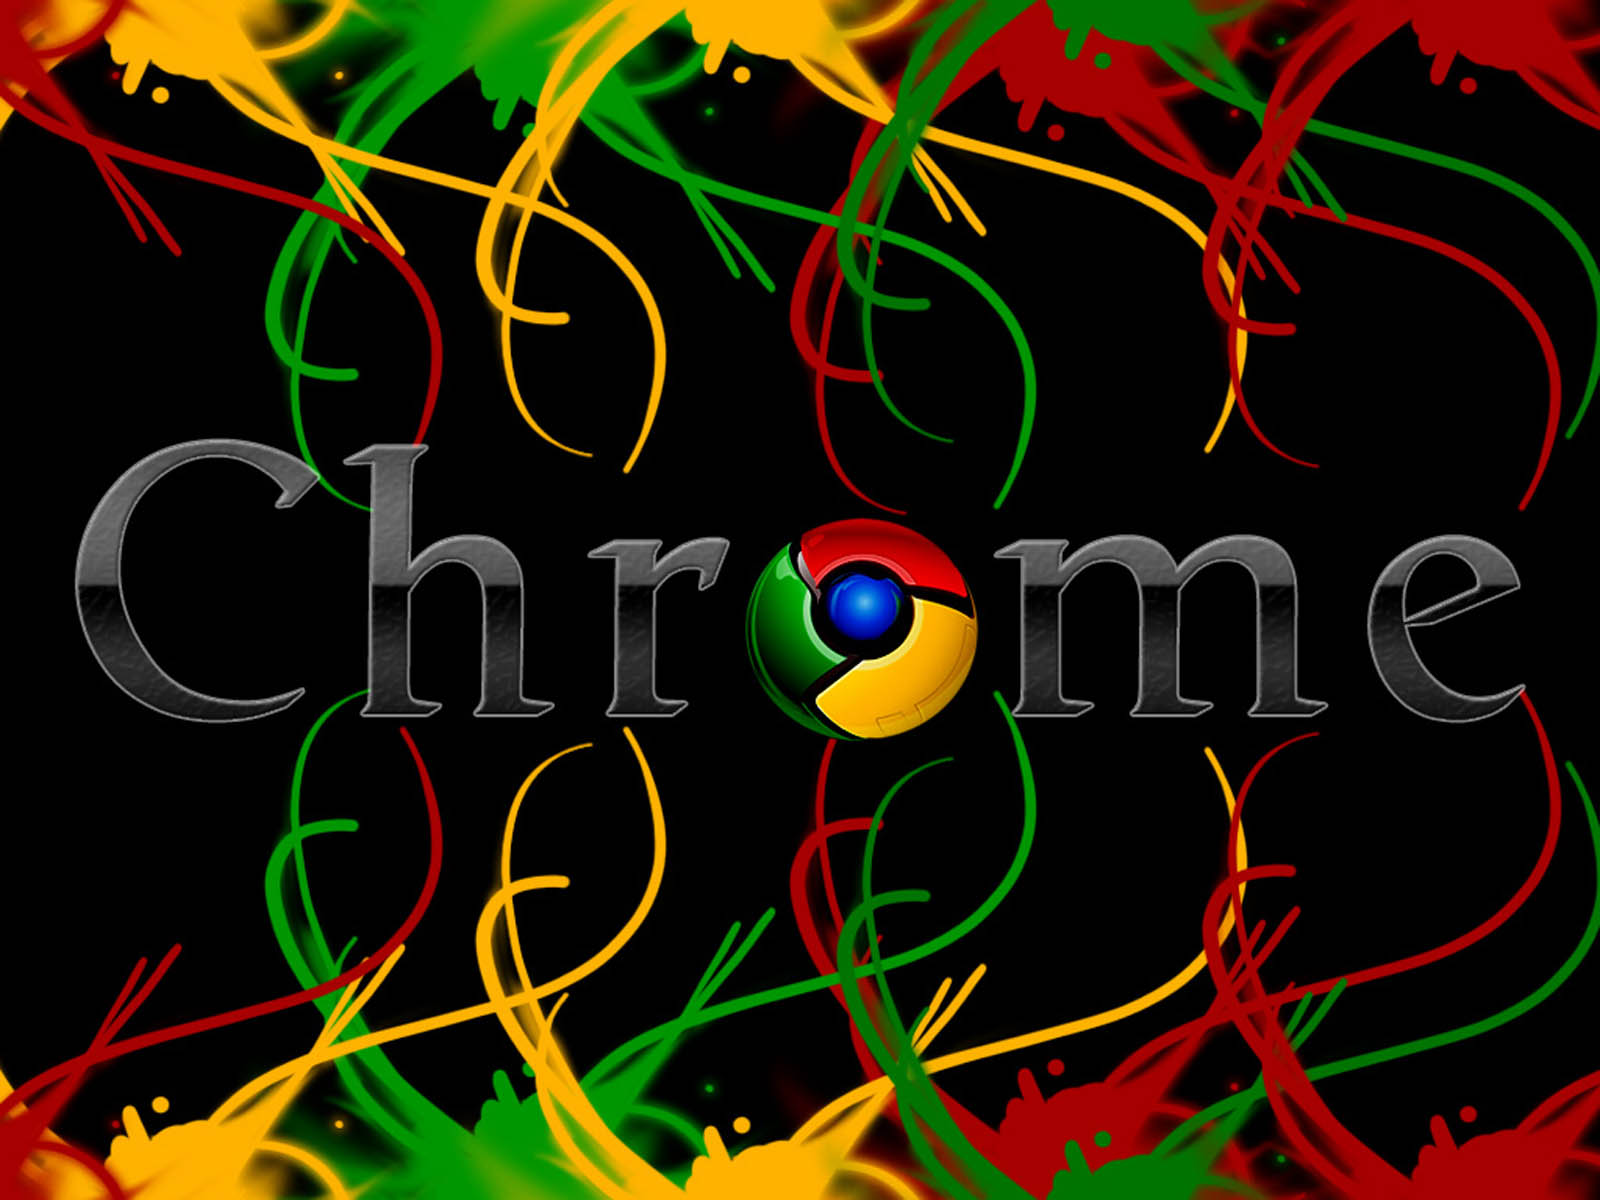 wallpapers: Google Chrome Wallpapers